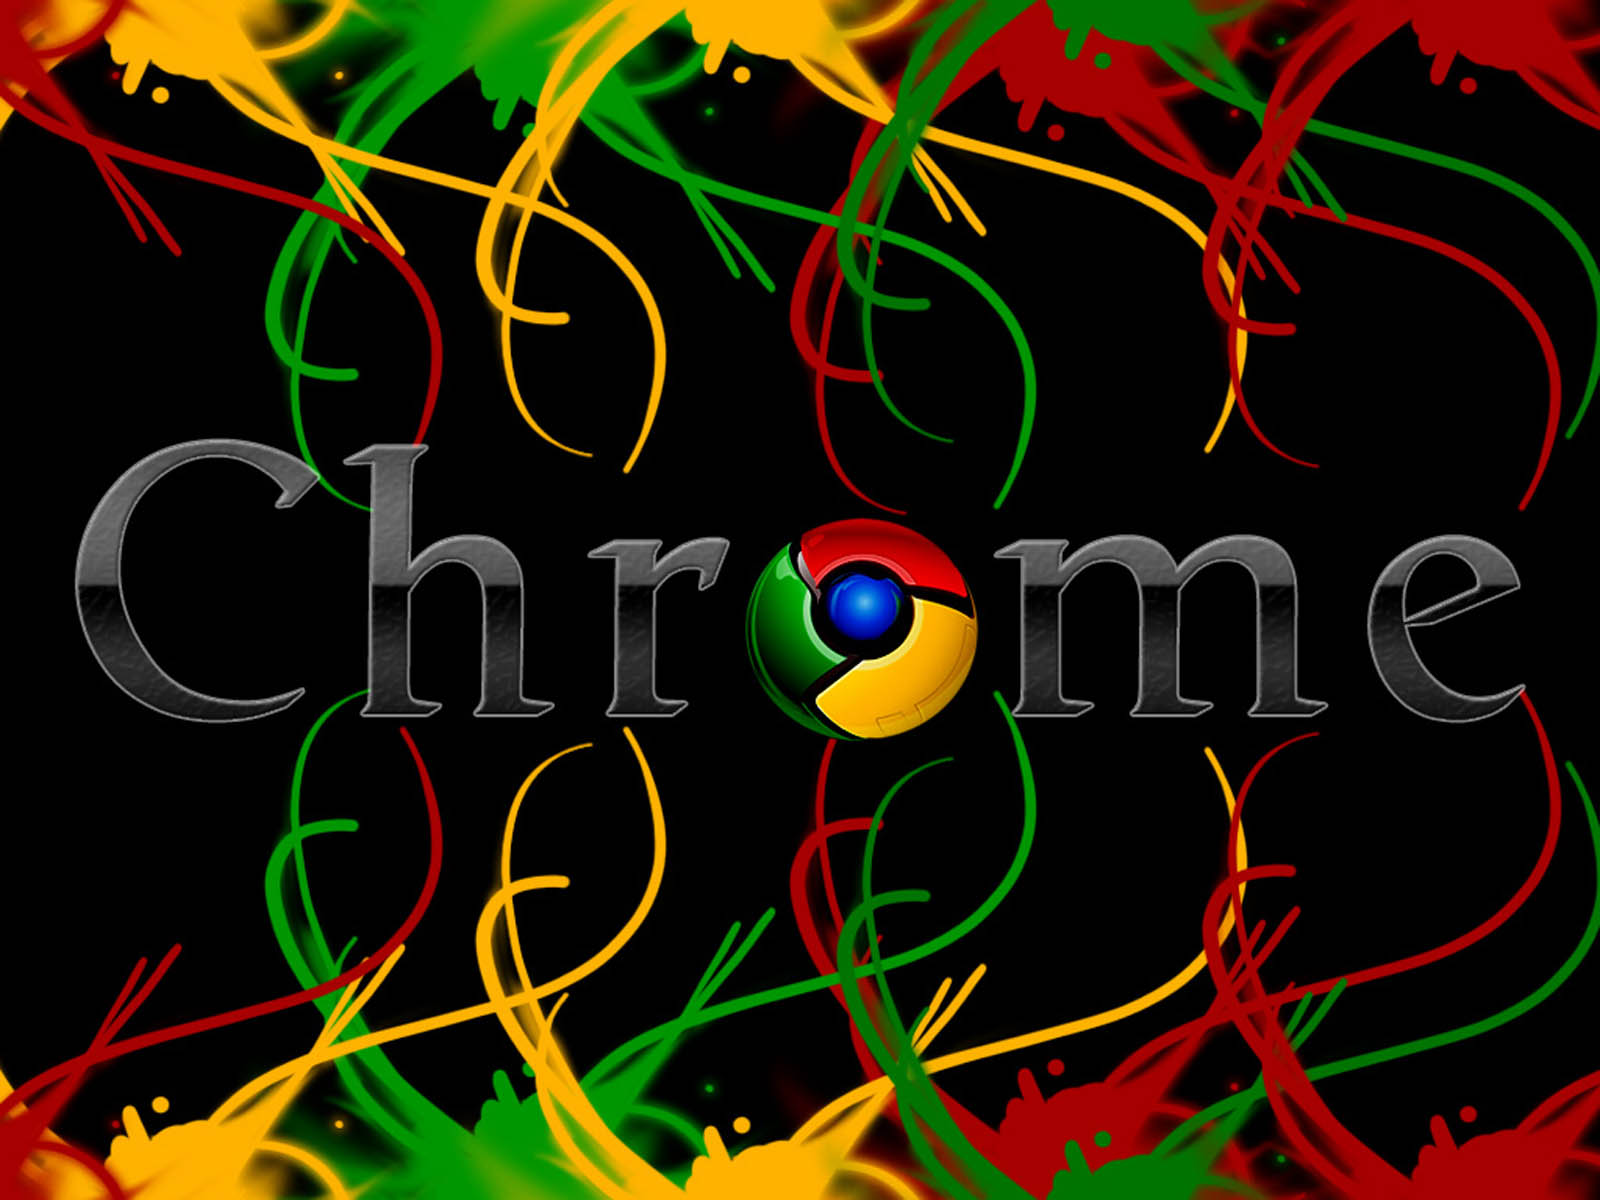 wallpapers: Google Chrome Wallpapers